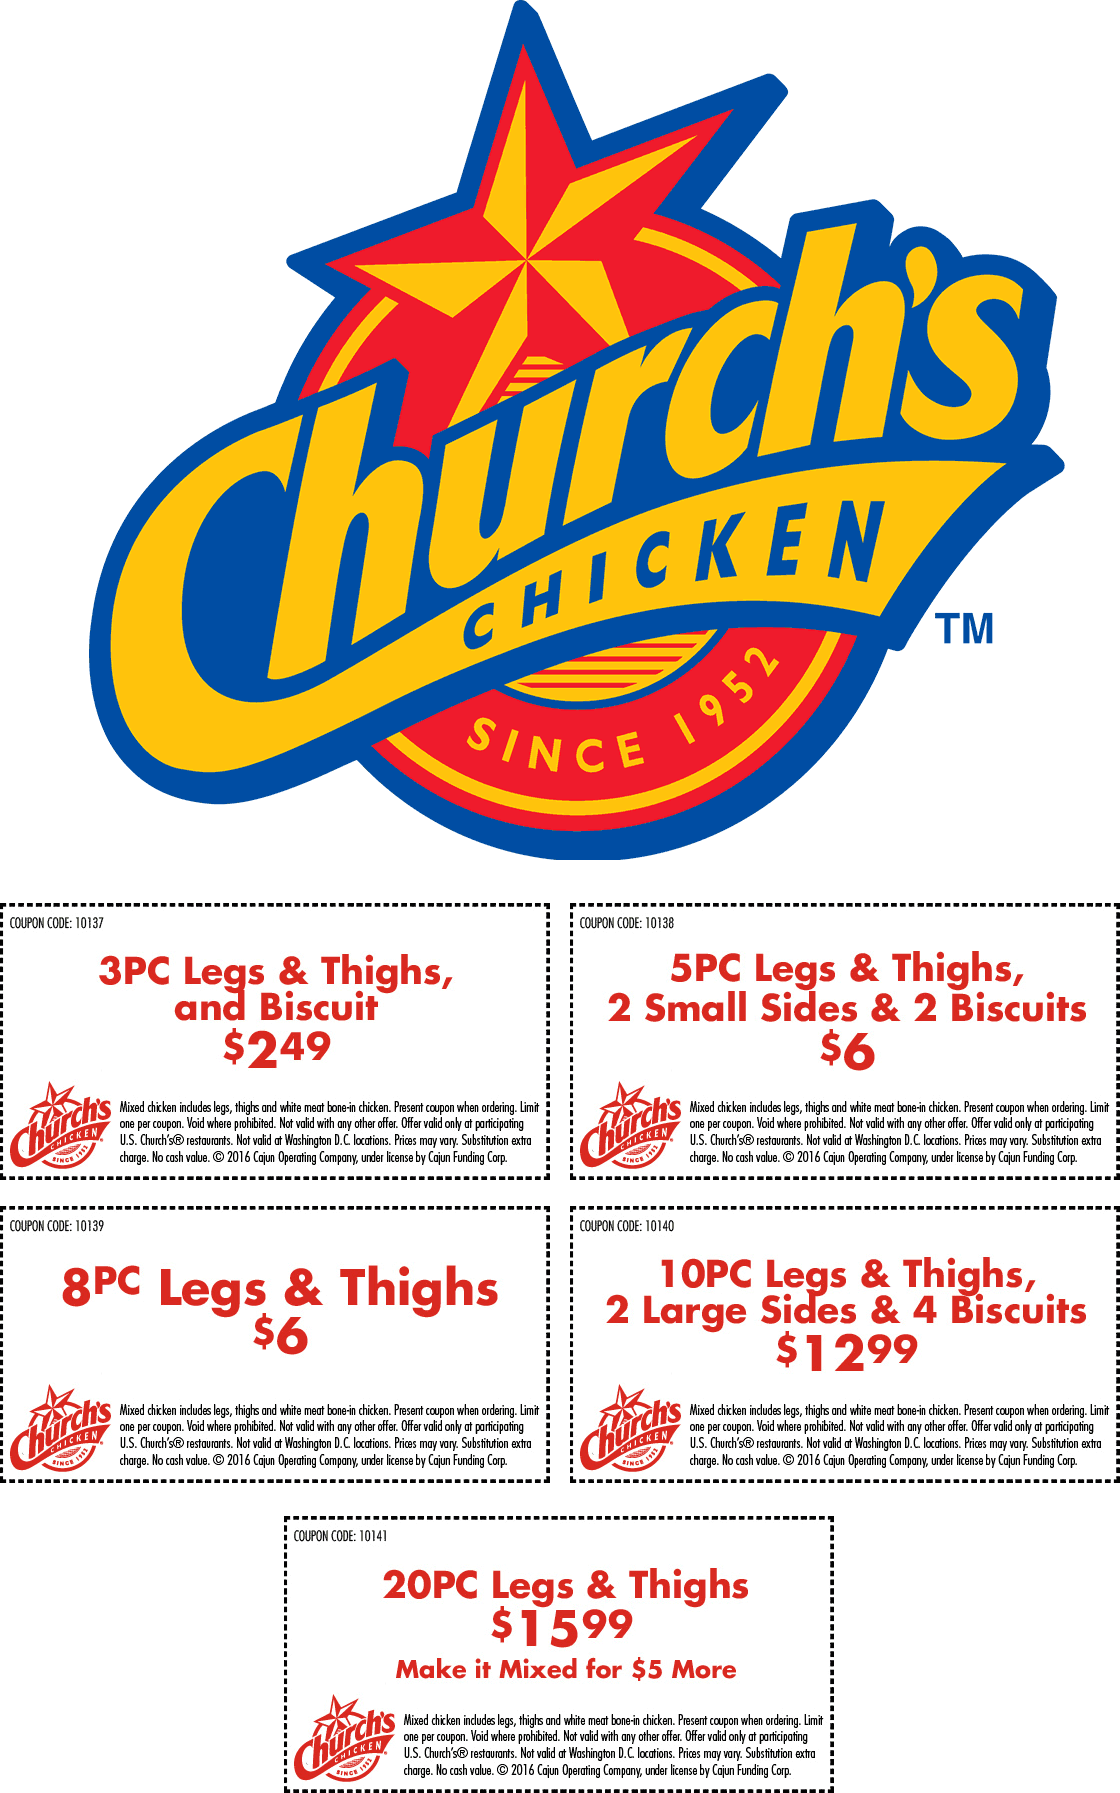 Churchs Chicken Coupon April 2017 5pc + 2 sides + 2 biscuits = $6 & more at Churchs Chicken